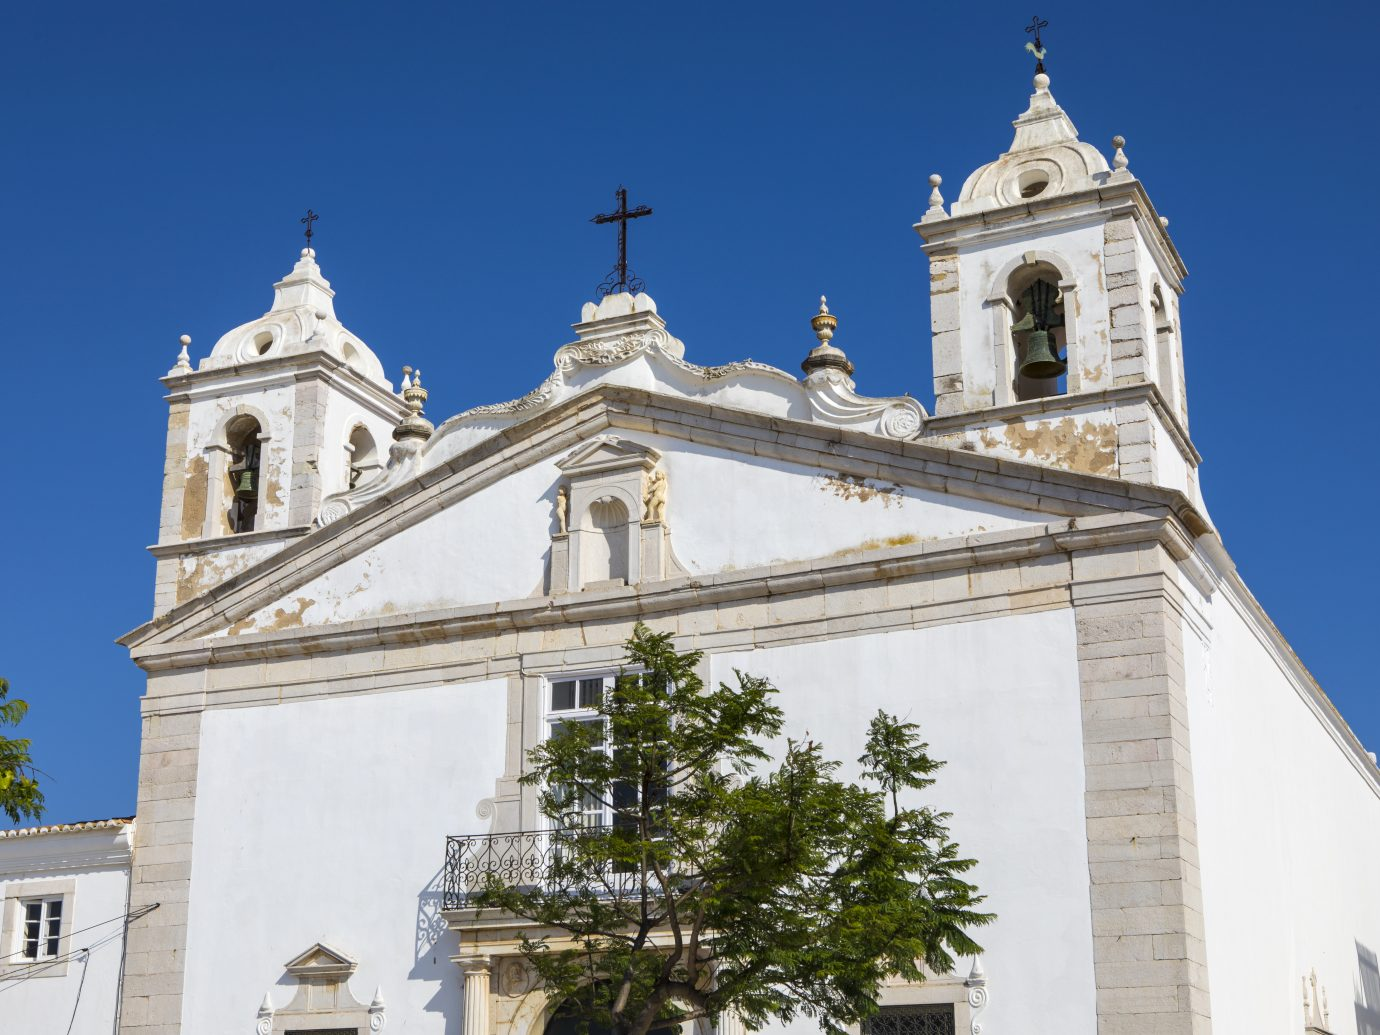 The exterior of Igreja de Santa Maria, or Church of Santa Maria, in the historic old town of Lagos in Portugal.